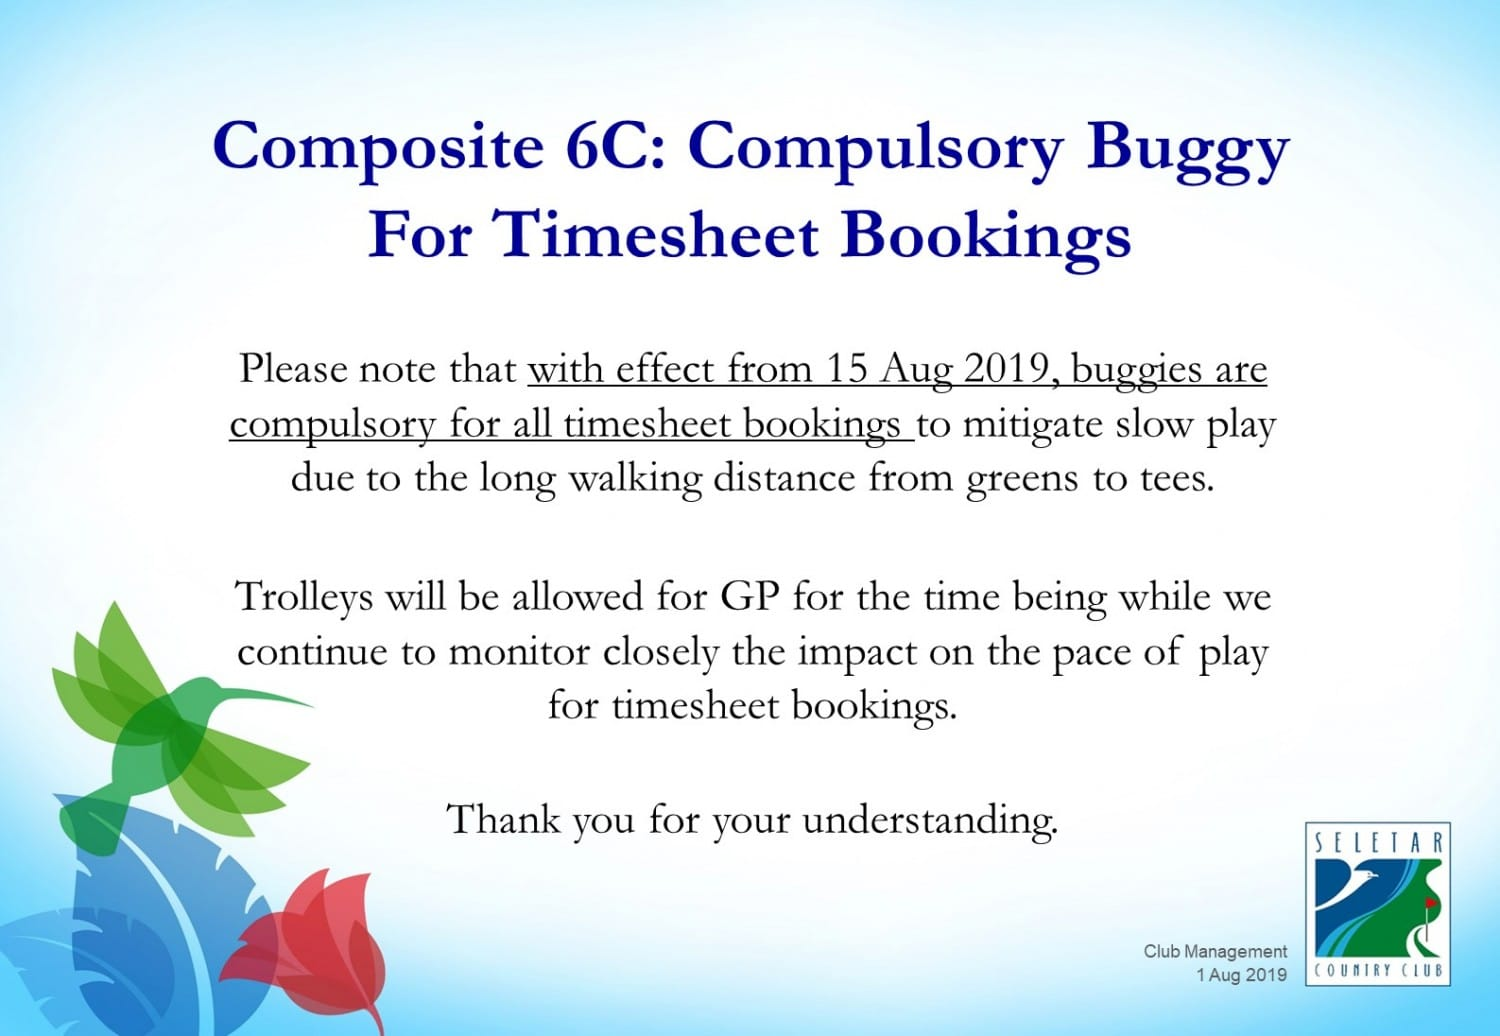 Compulsory buggy for timesheet booking - composite 6c